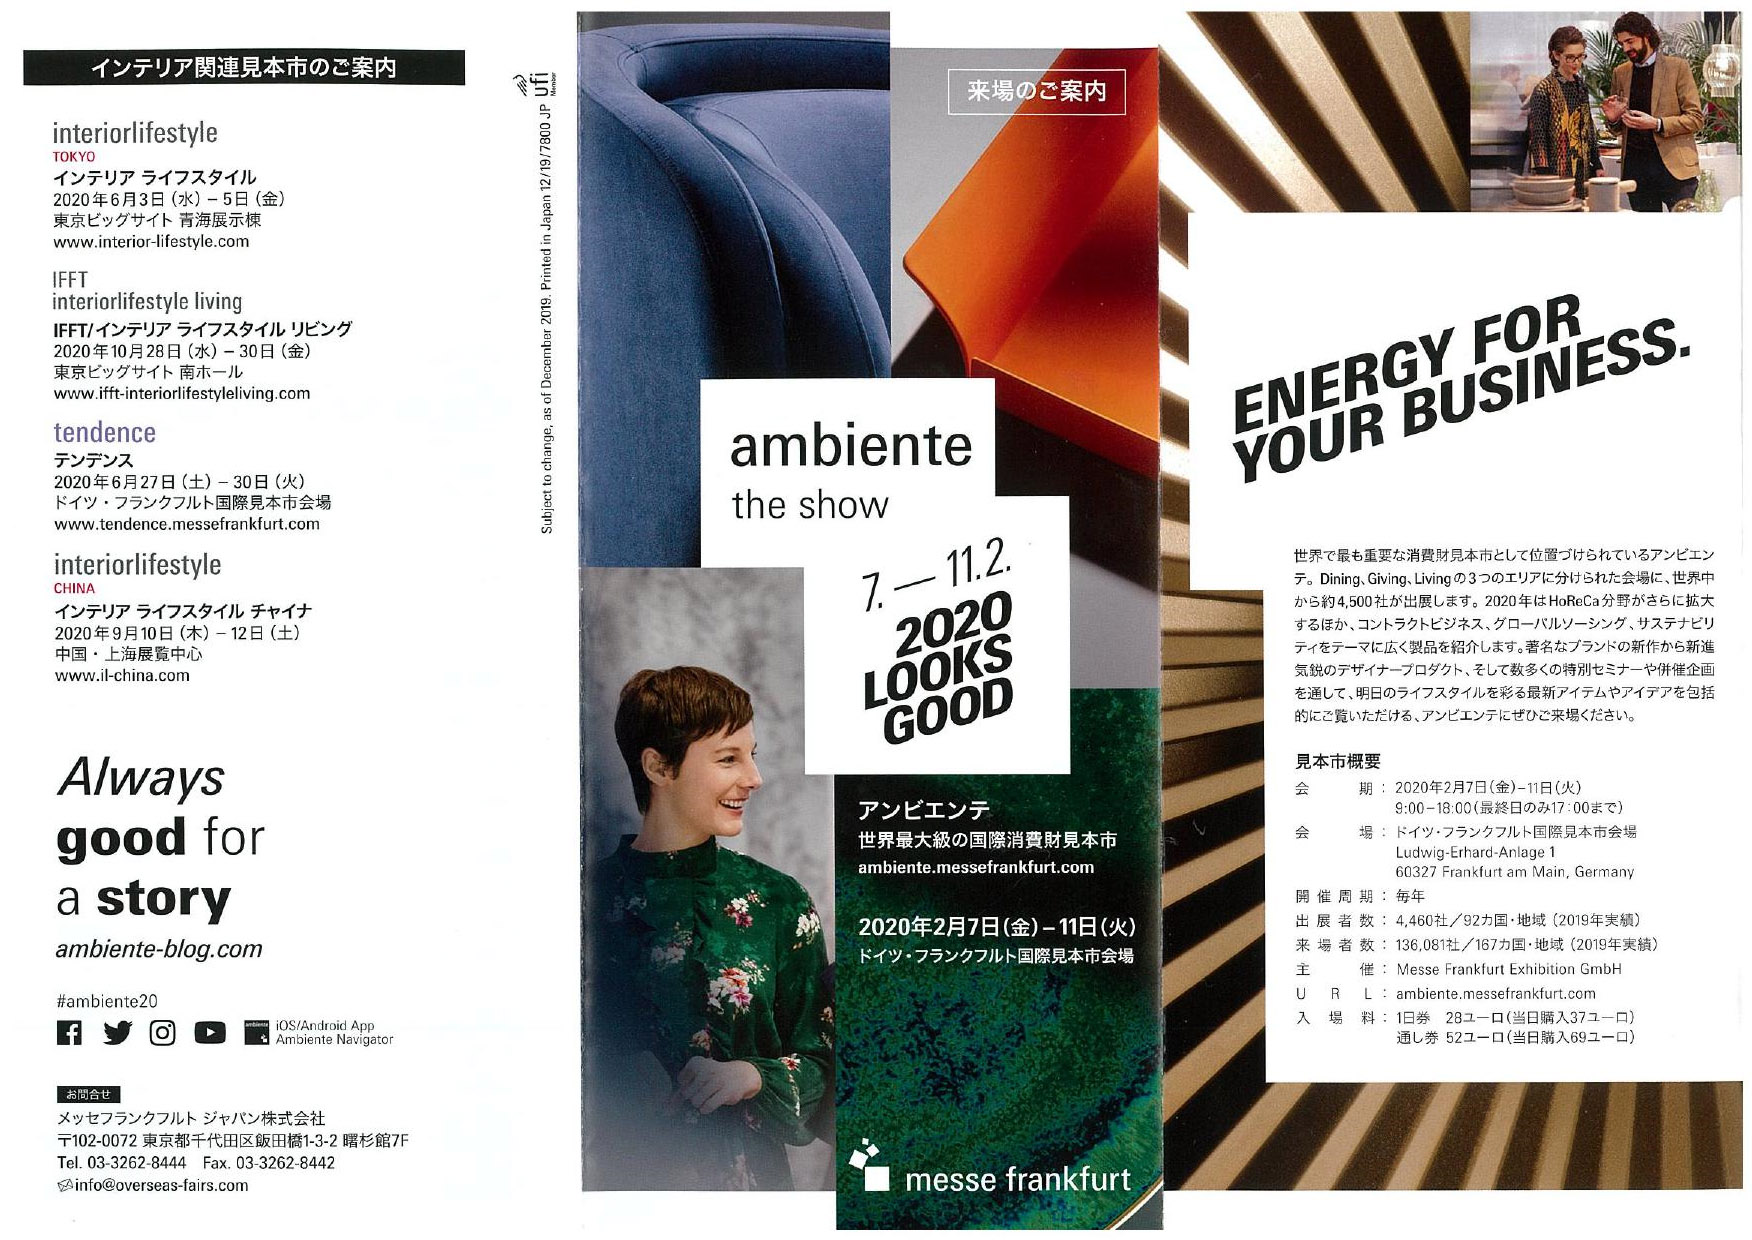 IMG: ambiente the show 2020